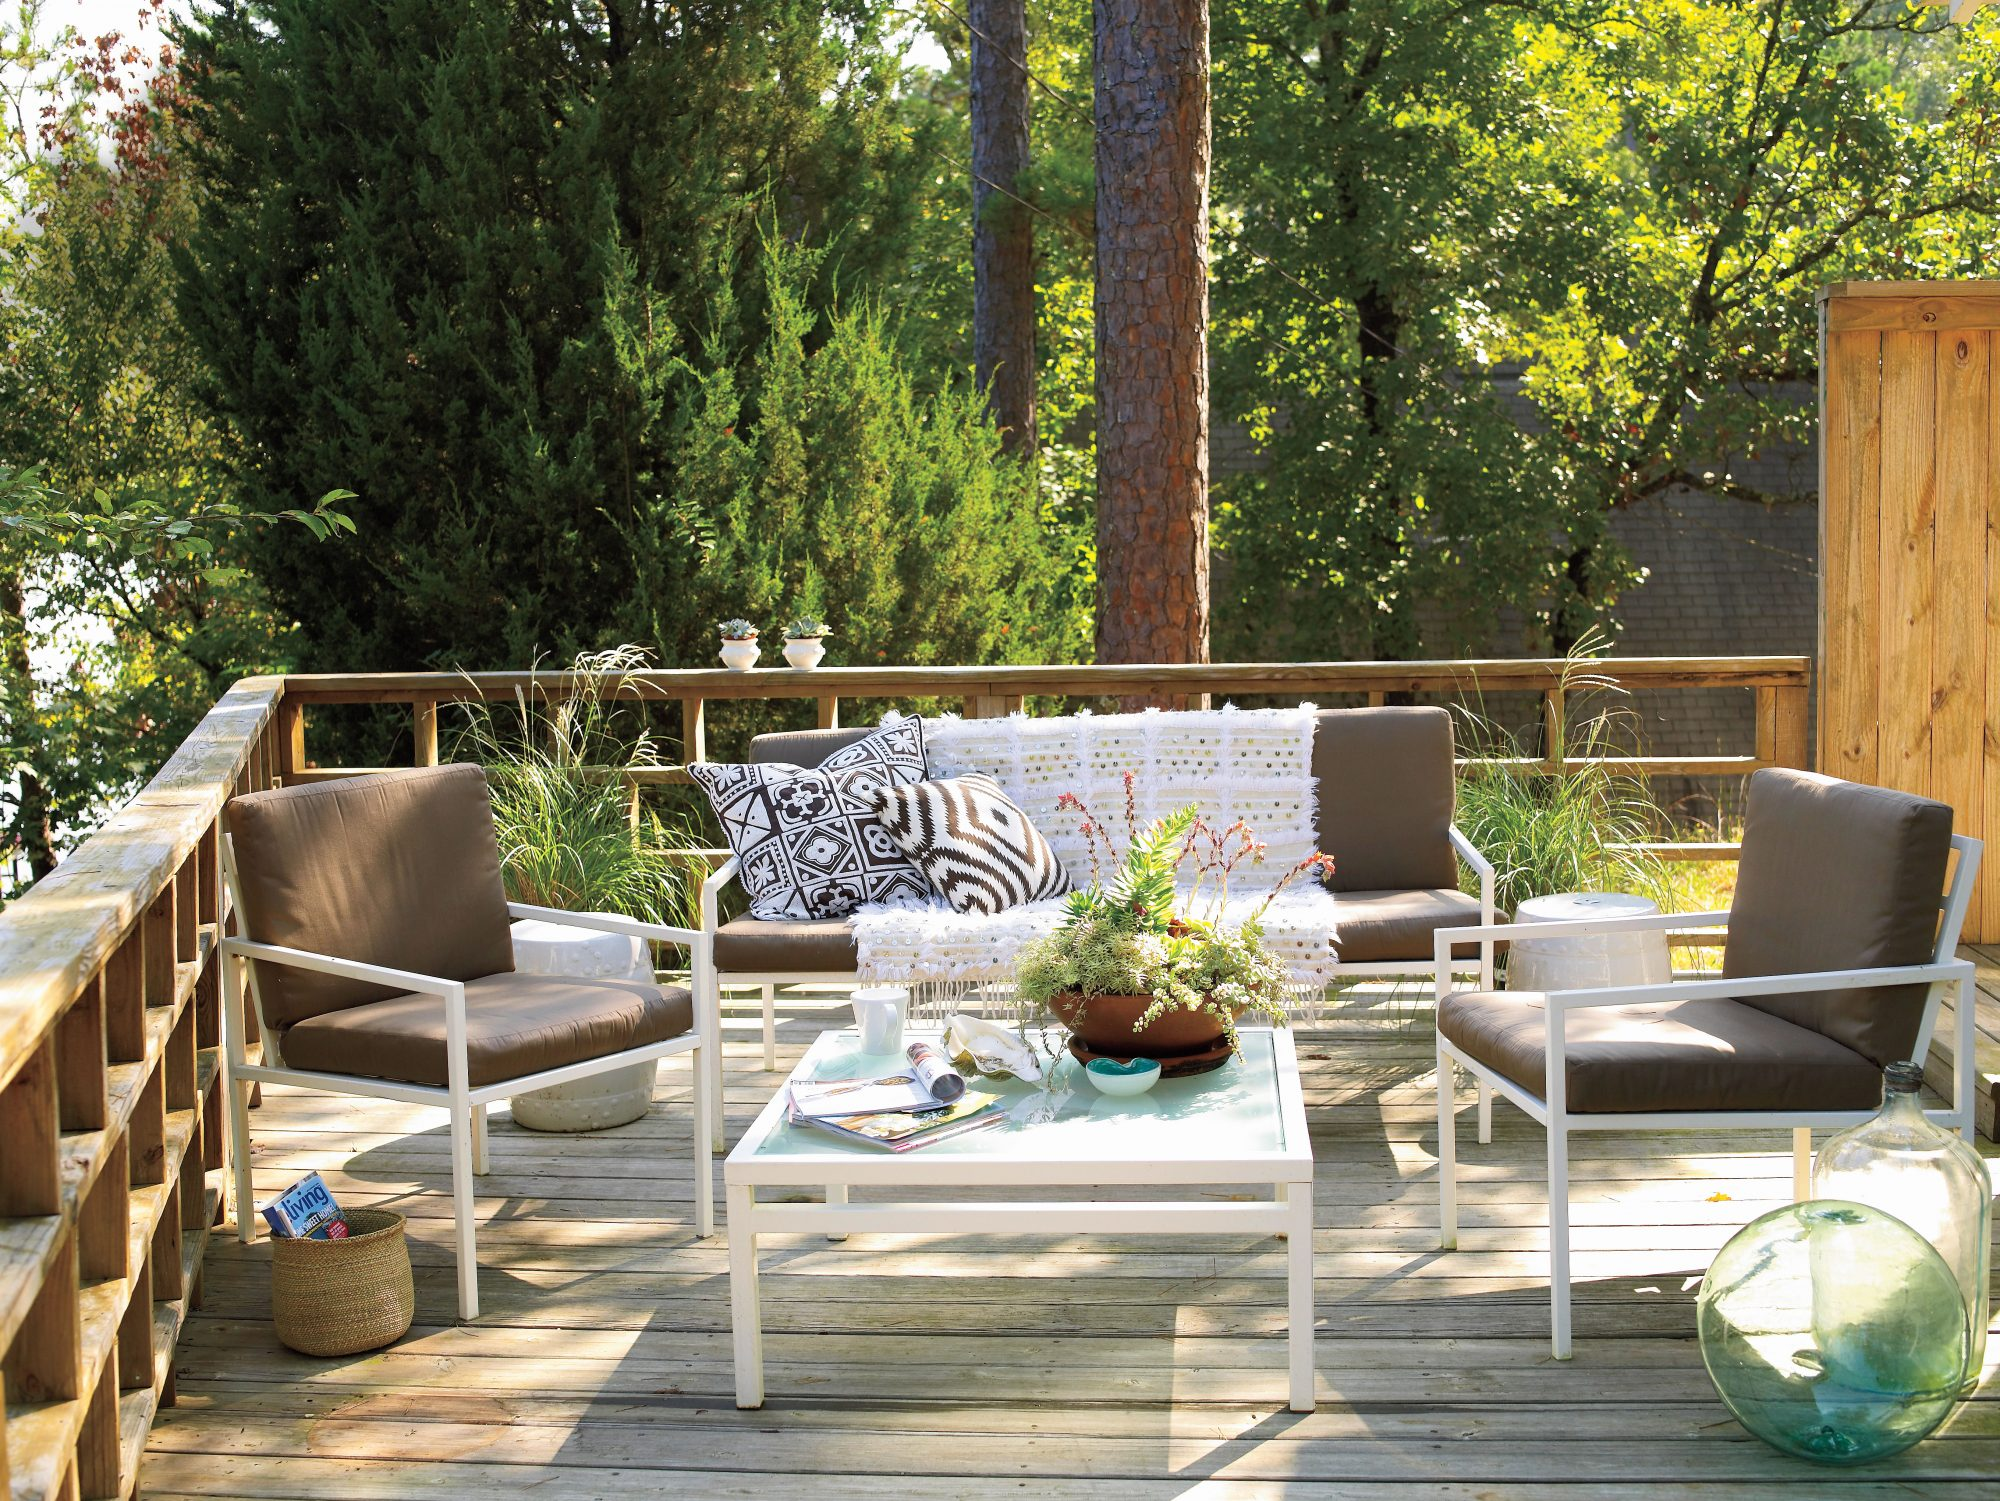 White Painted Home Decor: Correlating Deck Furniture